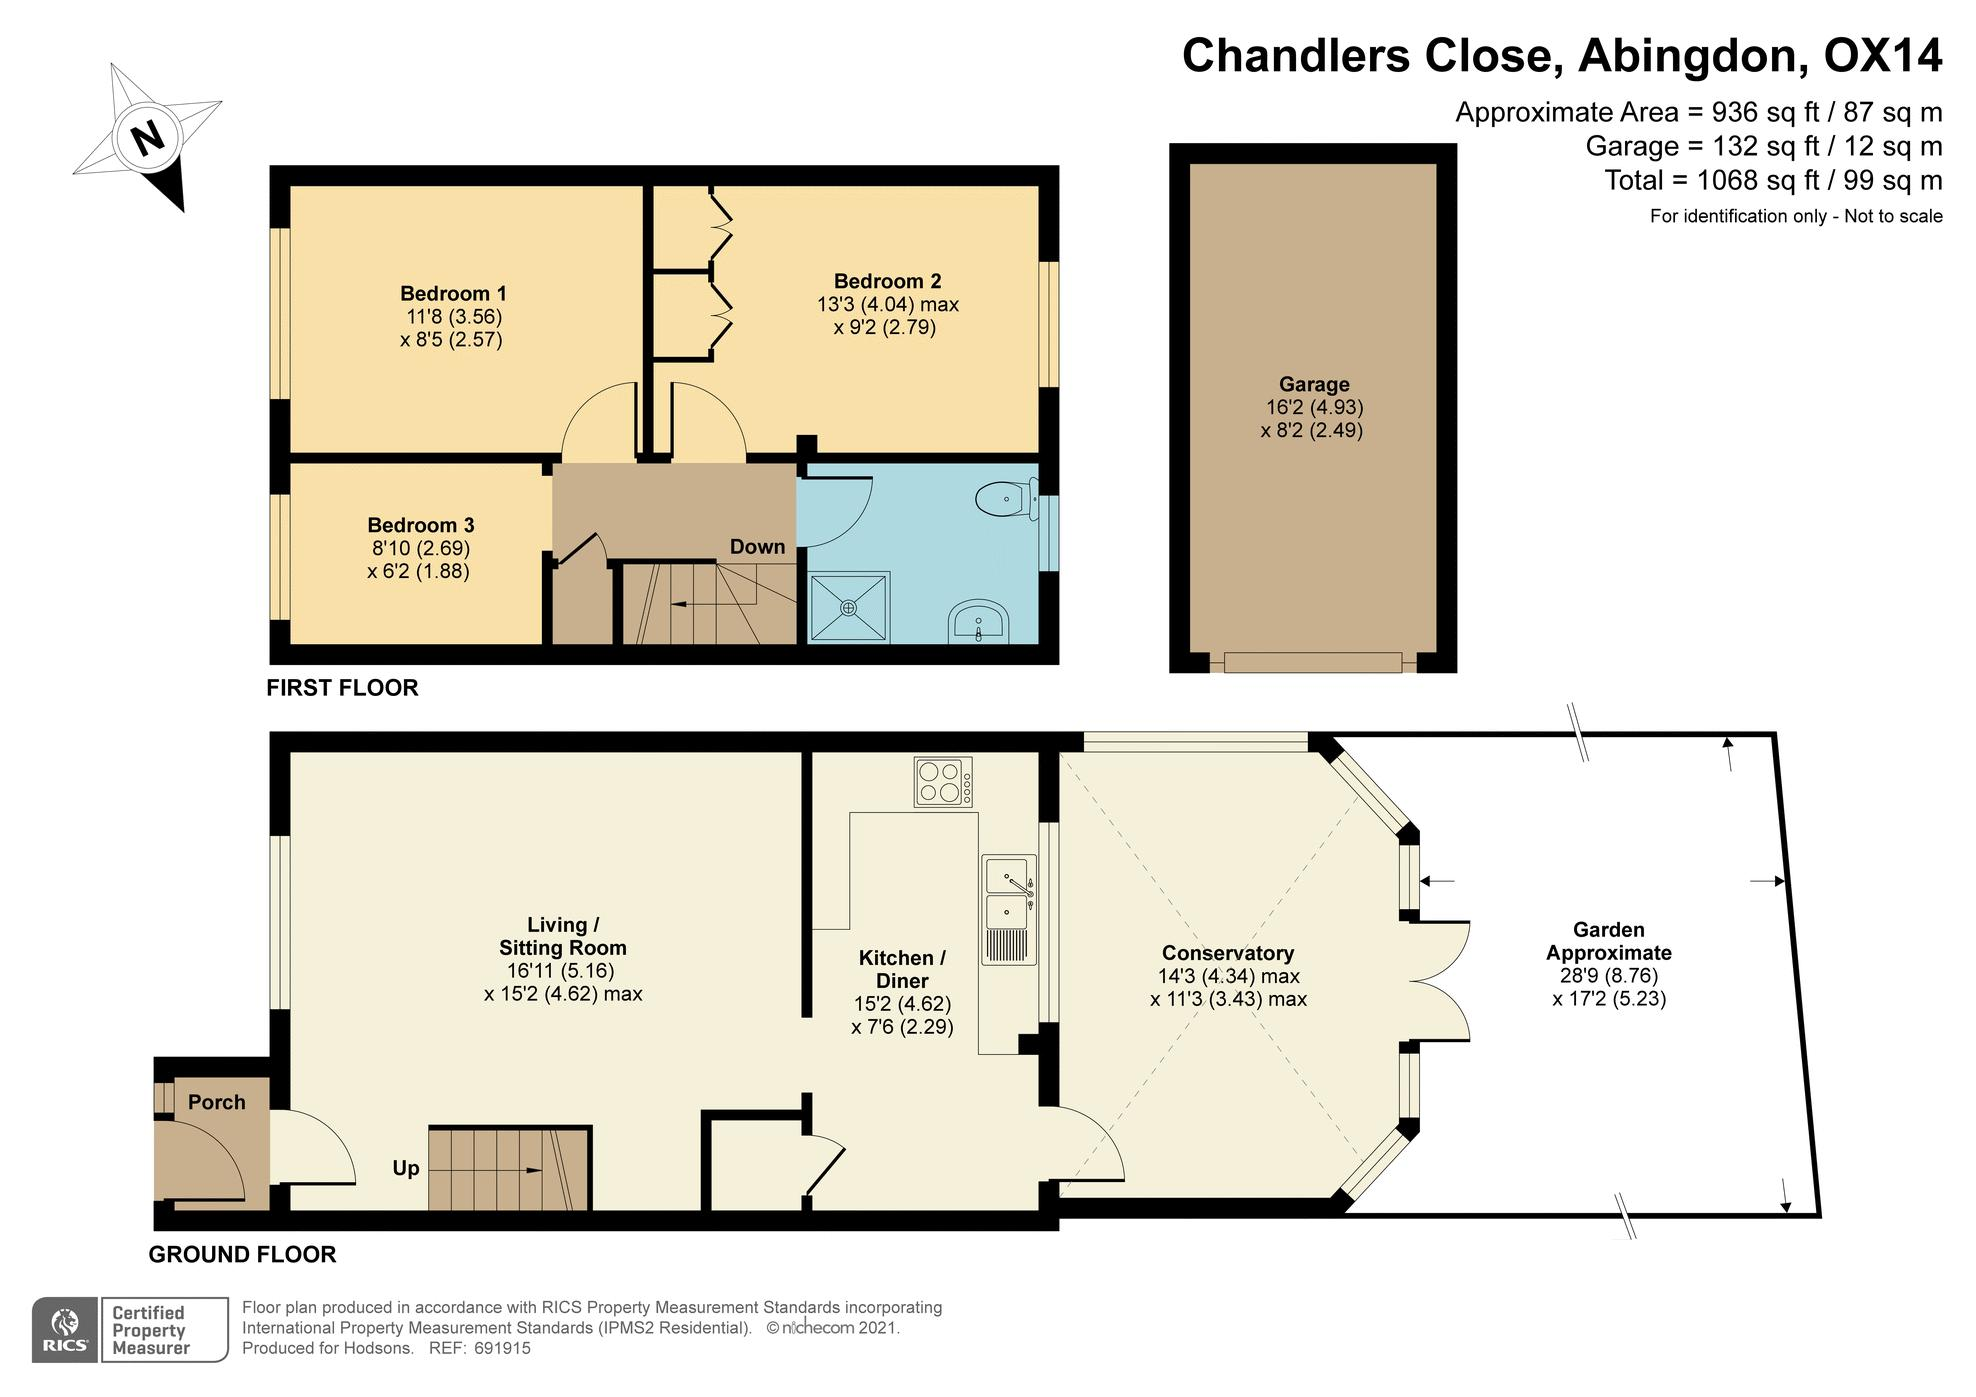 Chandlers Close